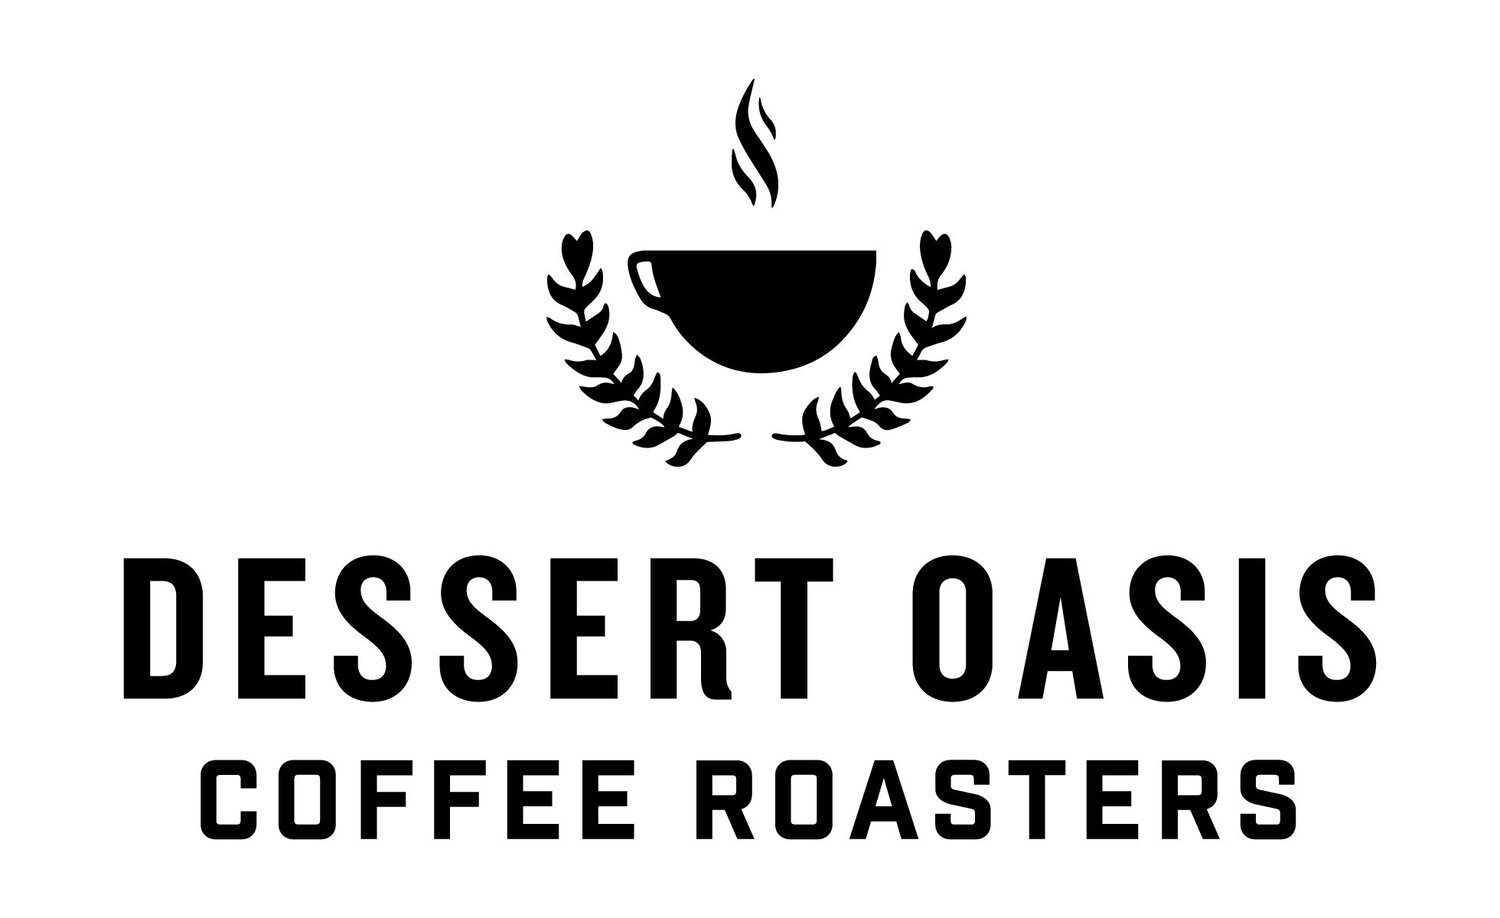 Dessert Oasis Coffee Roasters